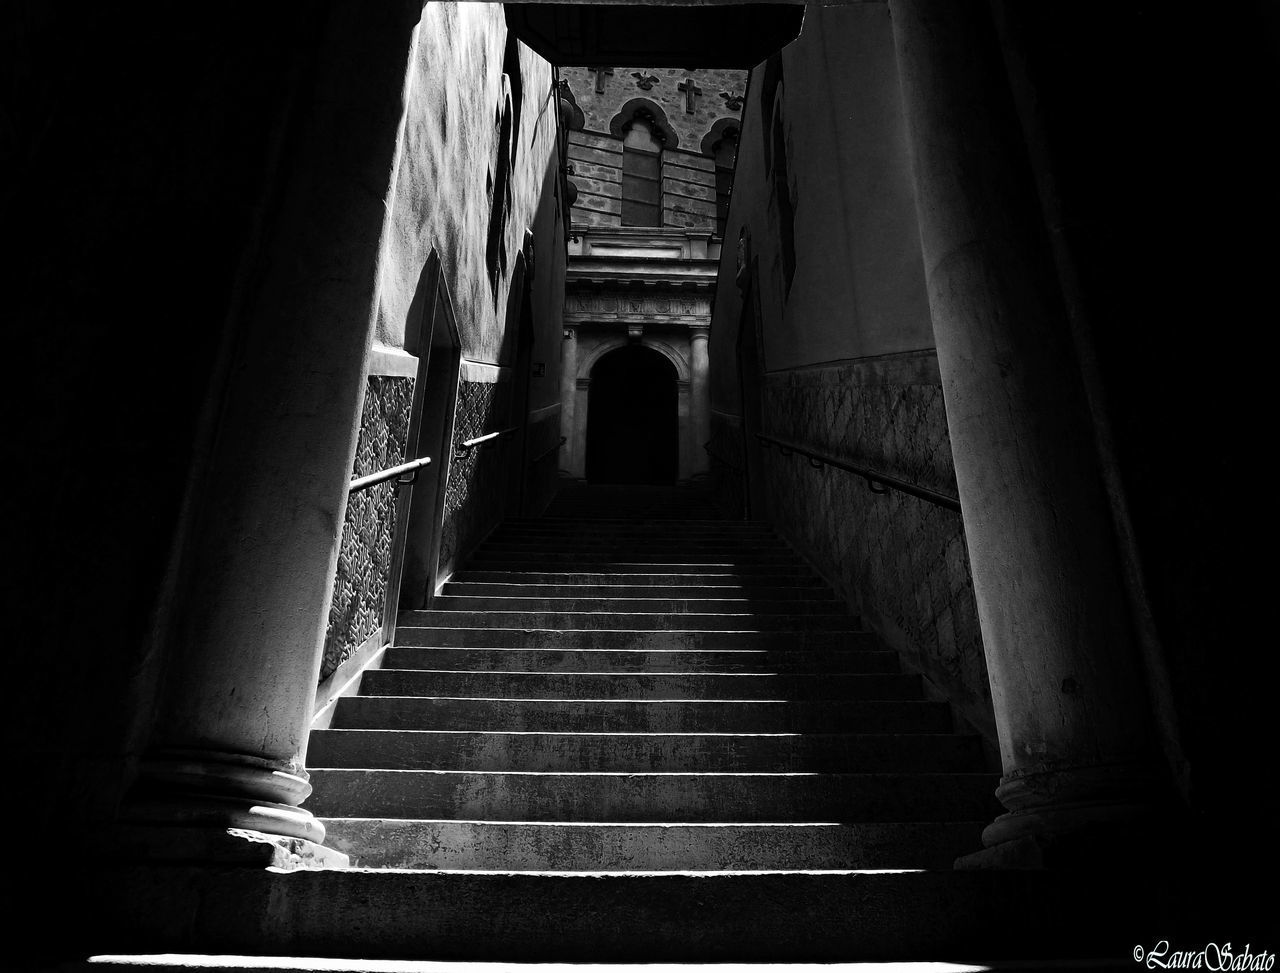 indoors, architecture, built structure, steps, architectural column, no people, day